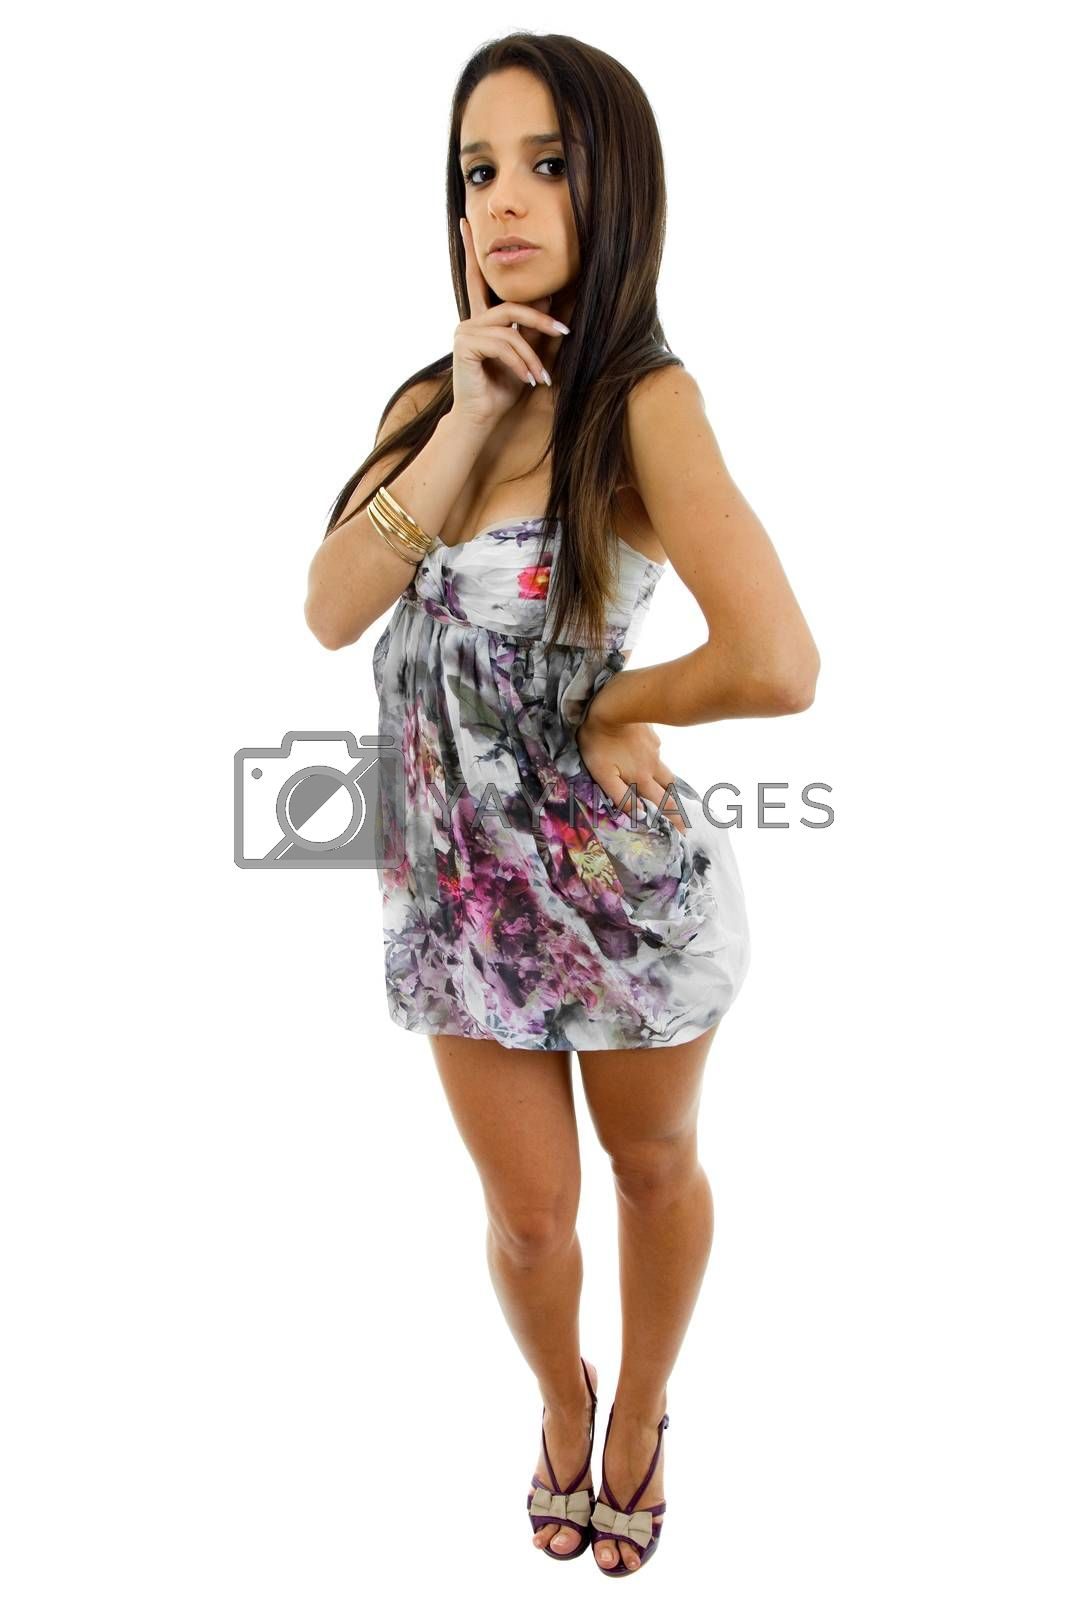 young beautiful woman full body, isolated on white